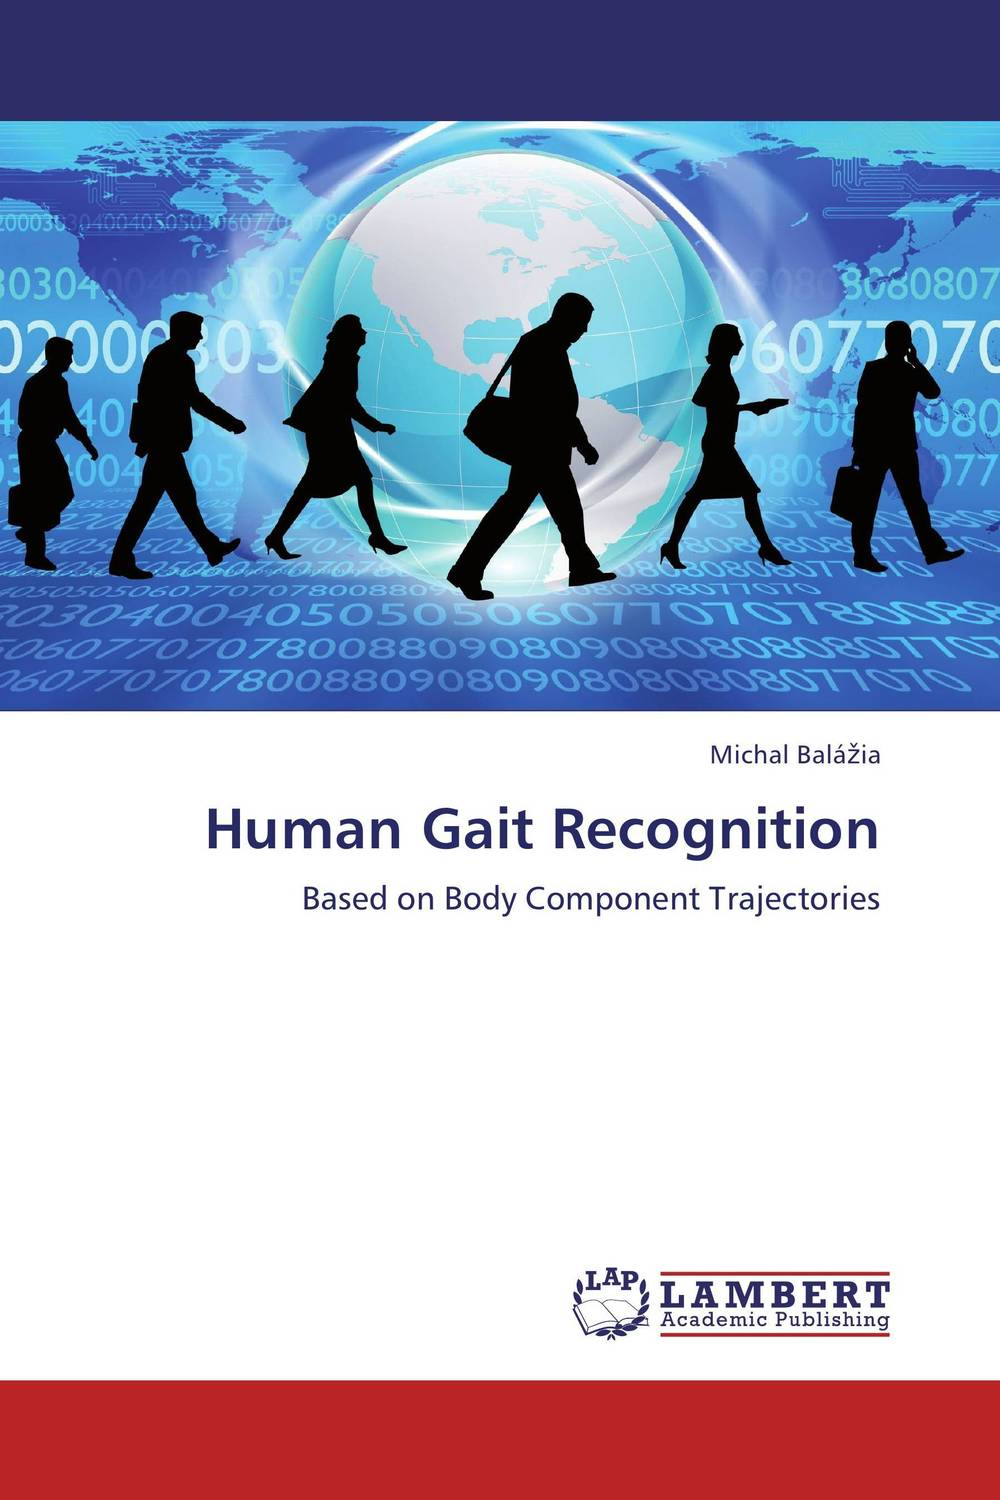 gait recognition Gait analysis for recognition and classification l lee w e l grimson mit artificial intelligence lab cambridge, ma 02139 abstract this paperdescribes a representationof gait.